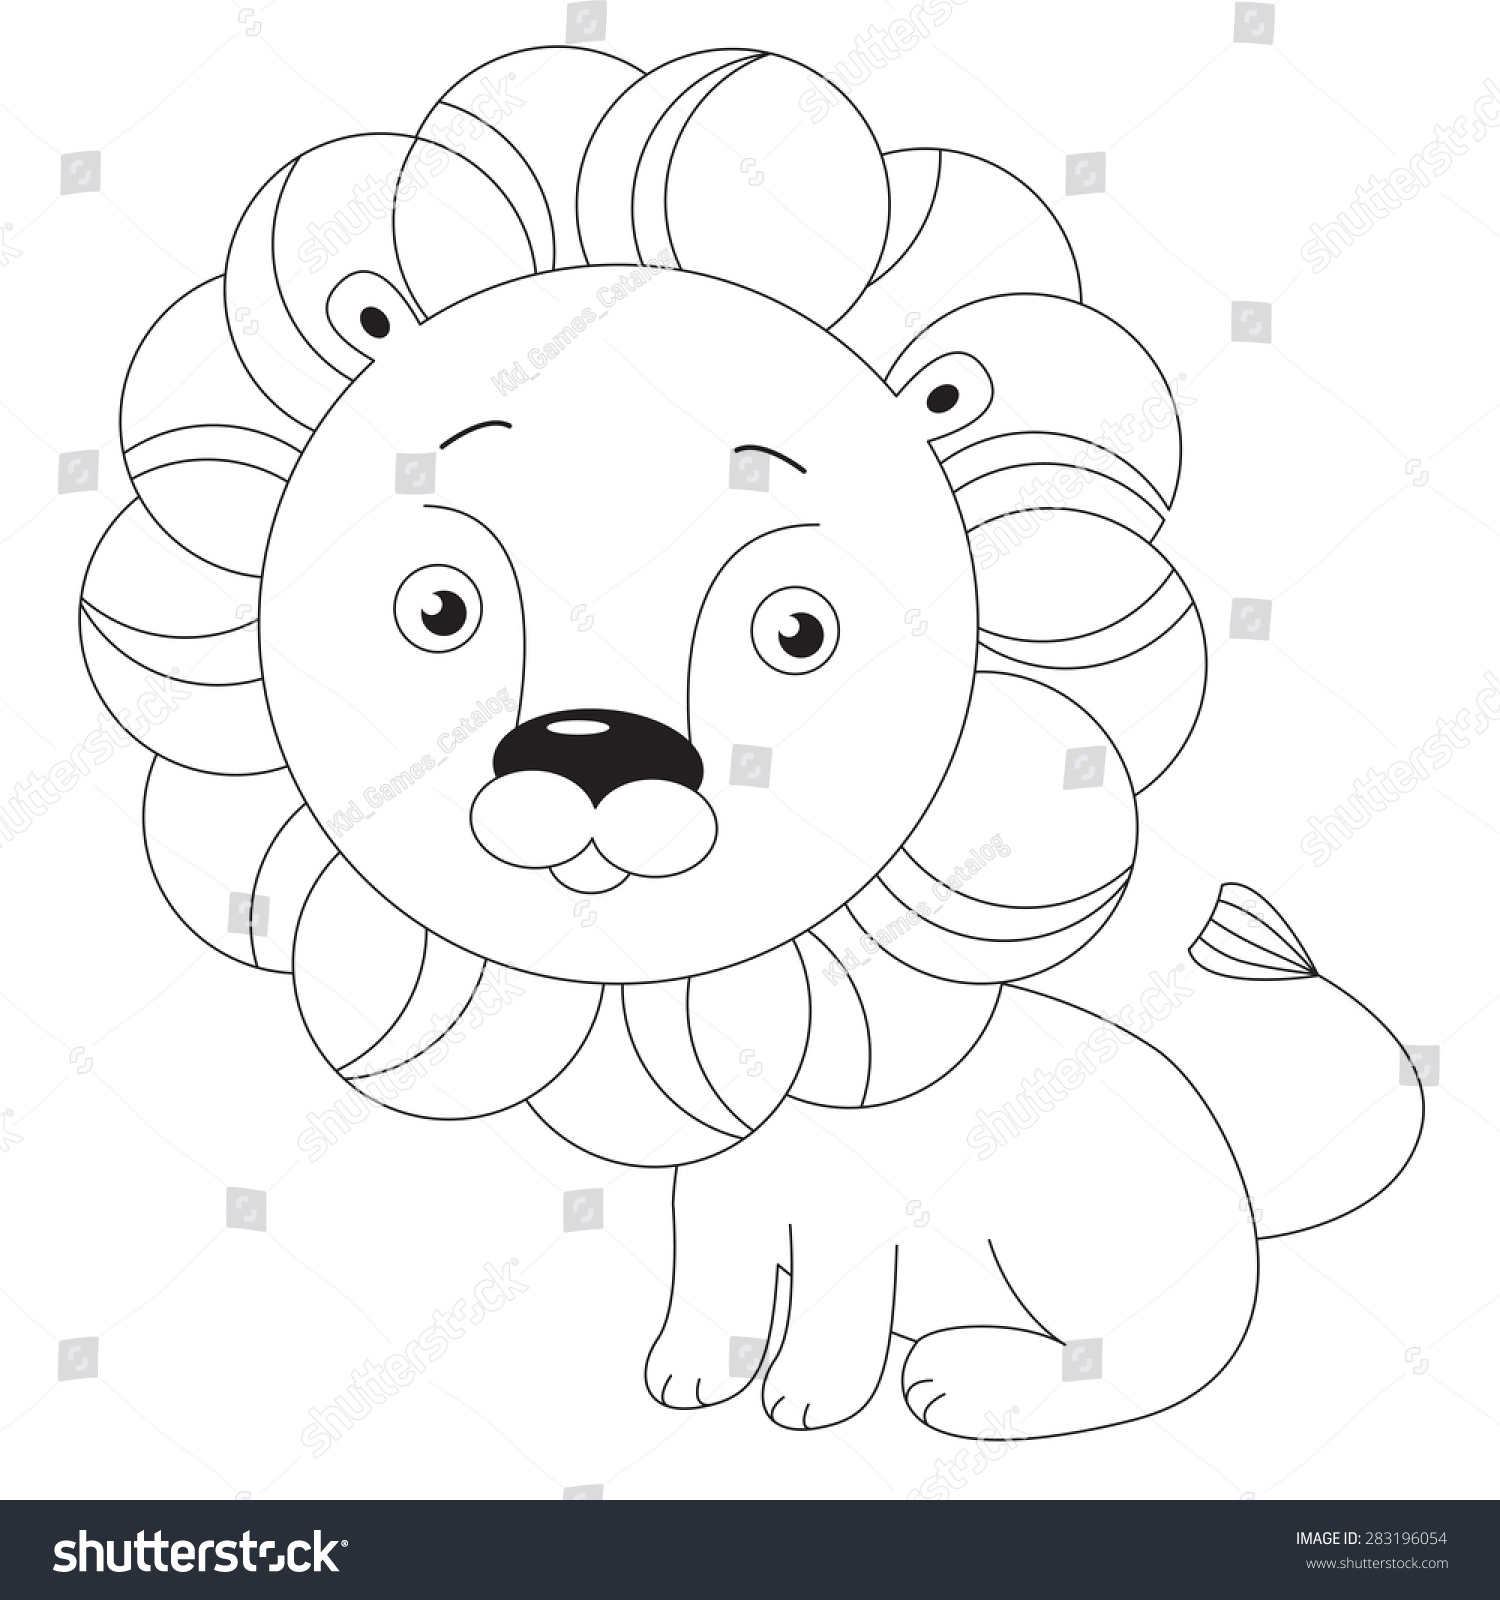 toy lion page be colored kid stock vector 283196054 shutterstock